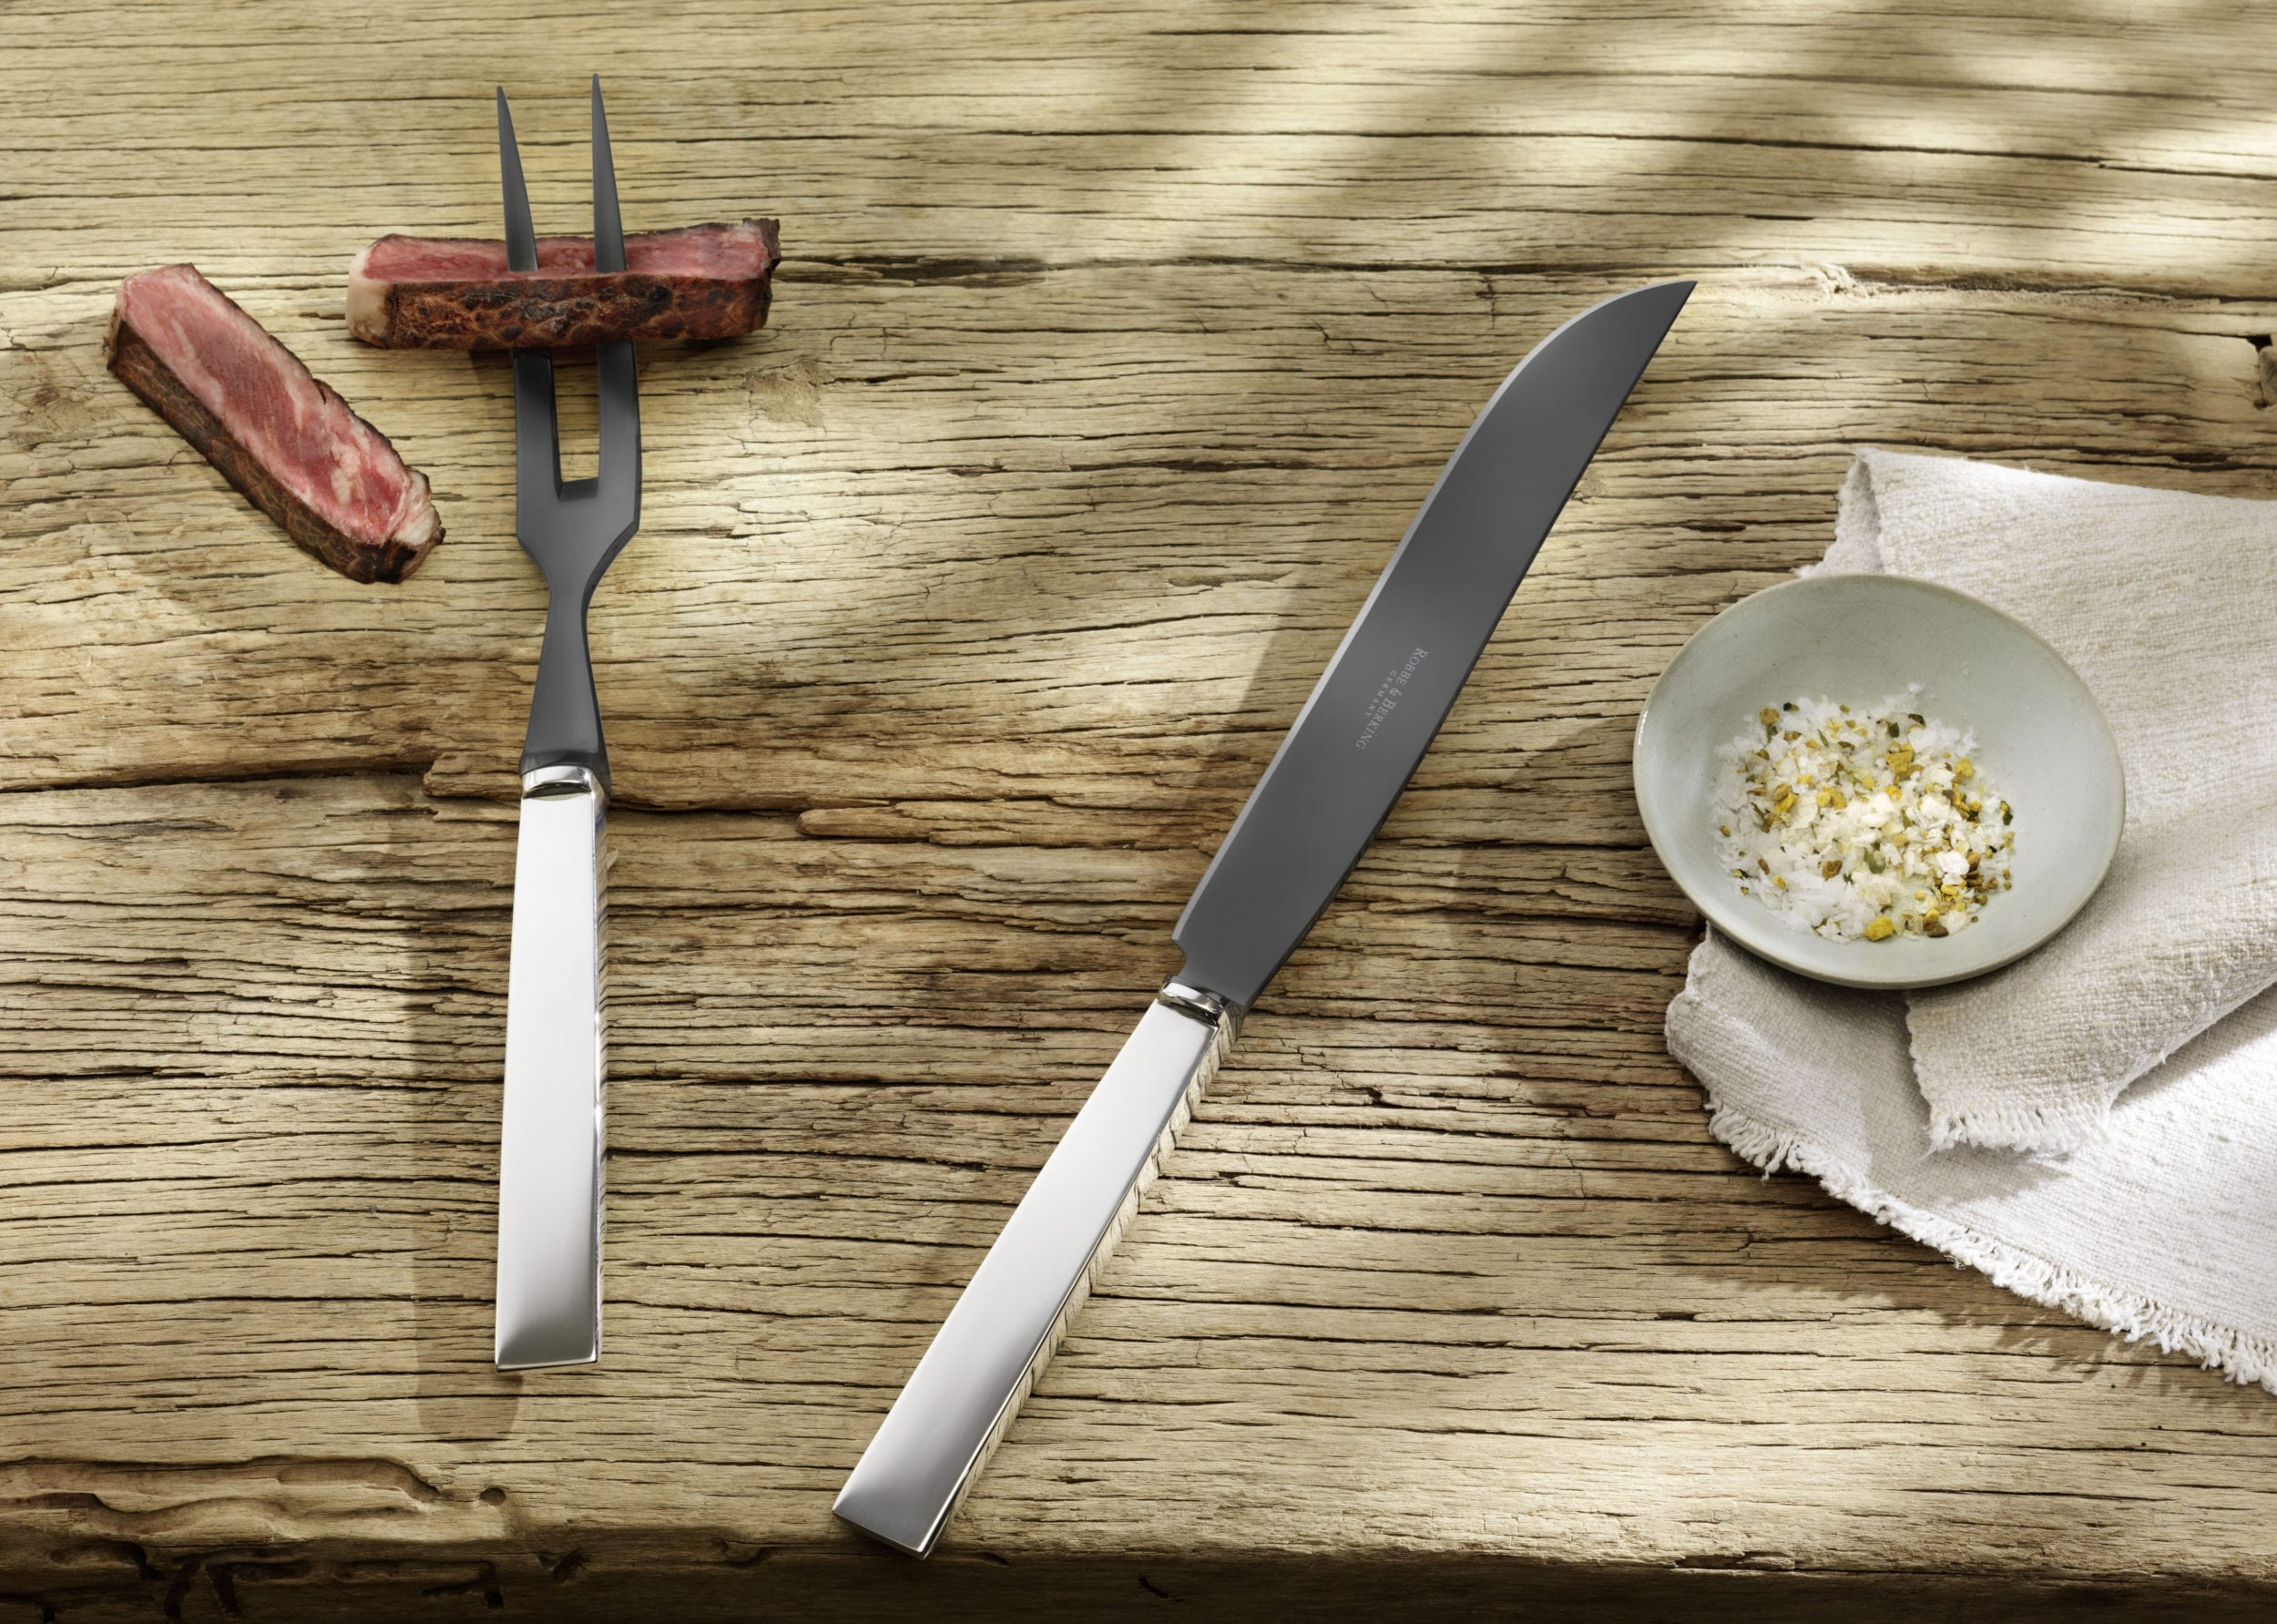 Riva Tranchierbesteck Carving cutlery STYLISH BARBECUE